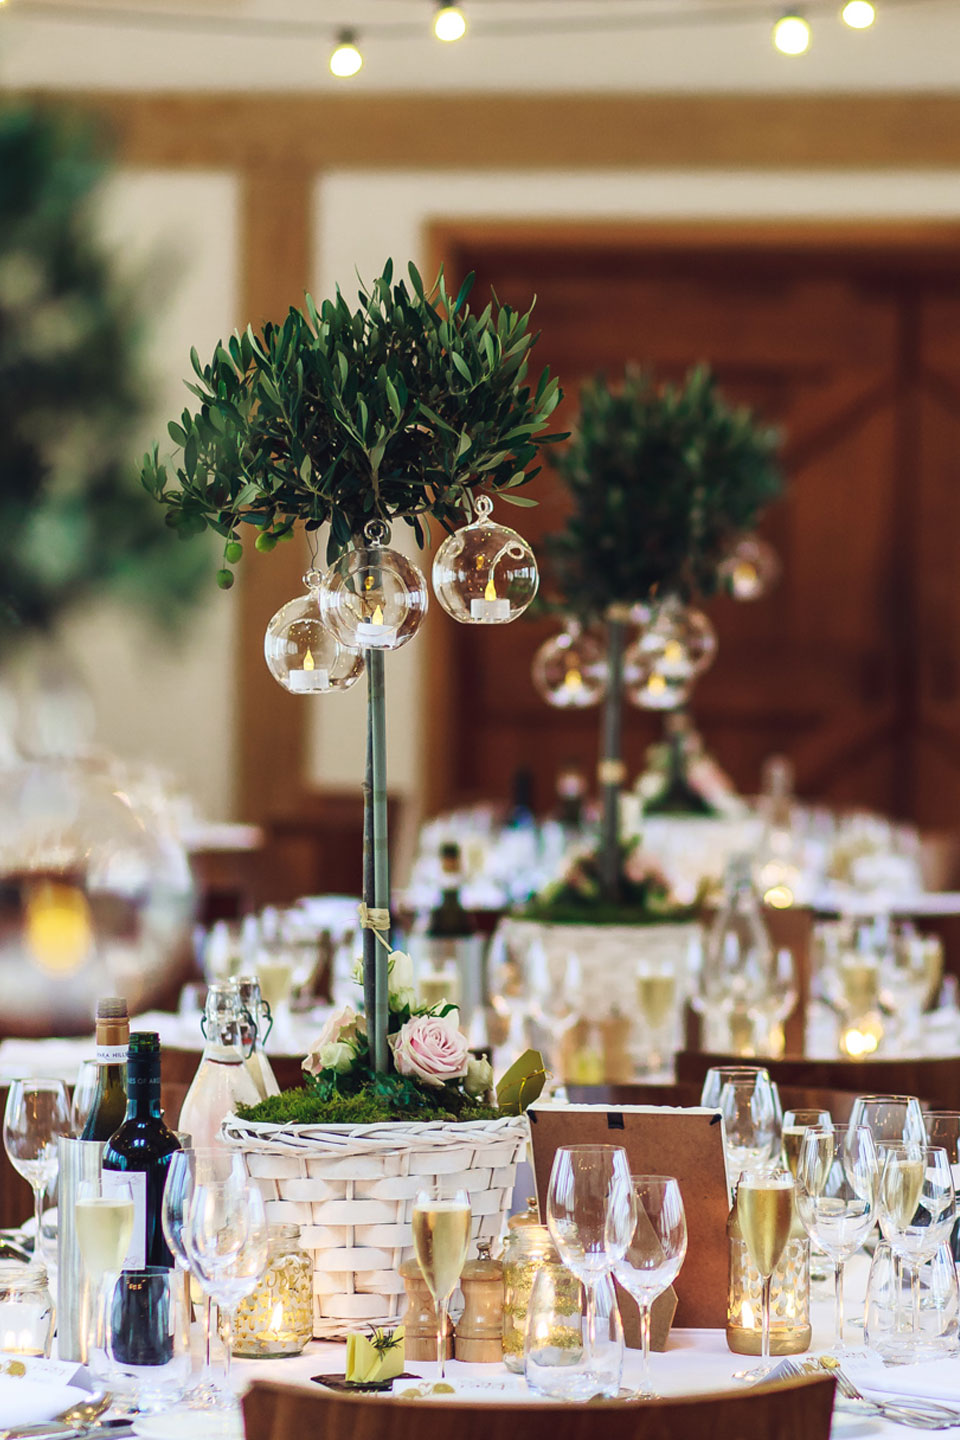 Glass circular candle holders hung from tall green plants for the wedding centrepieces